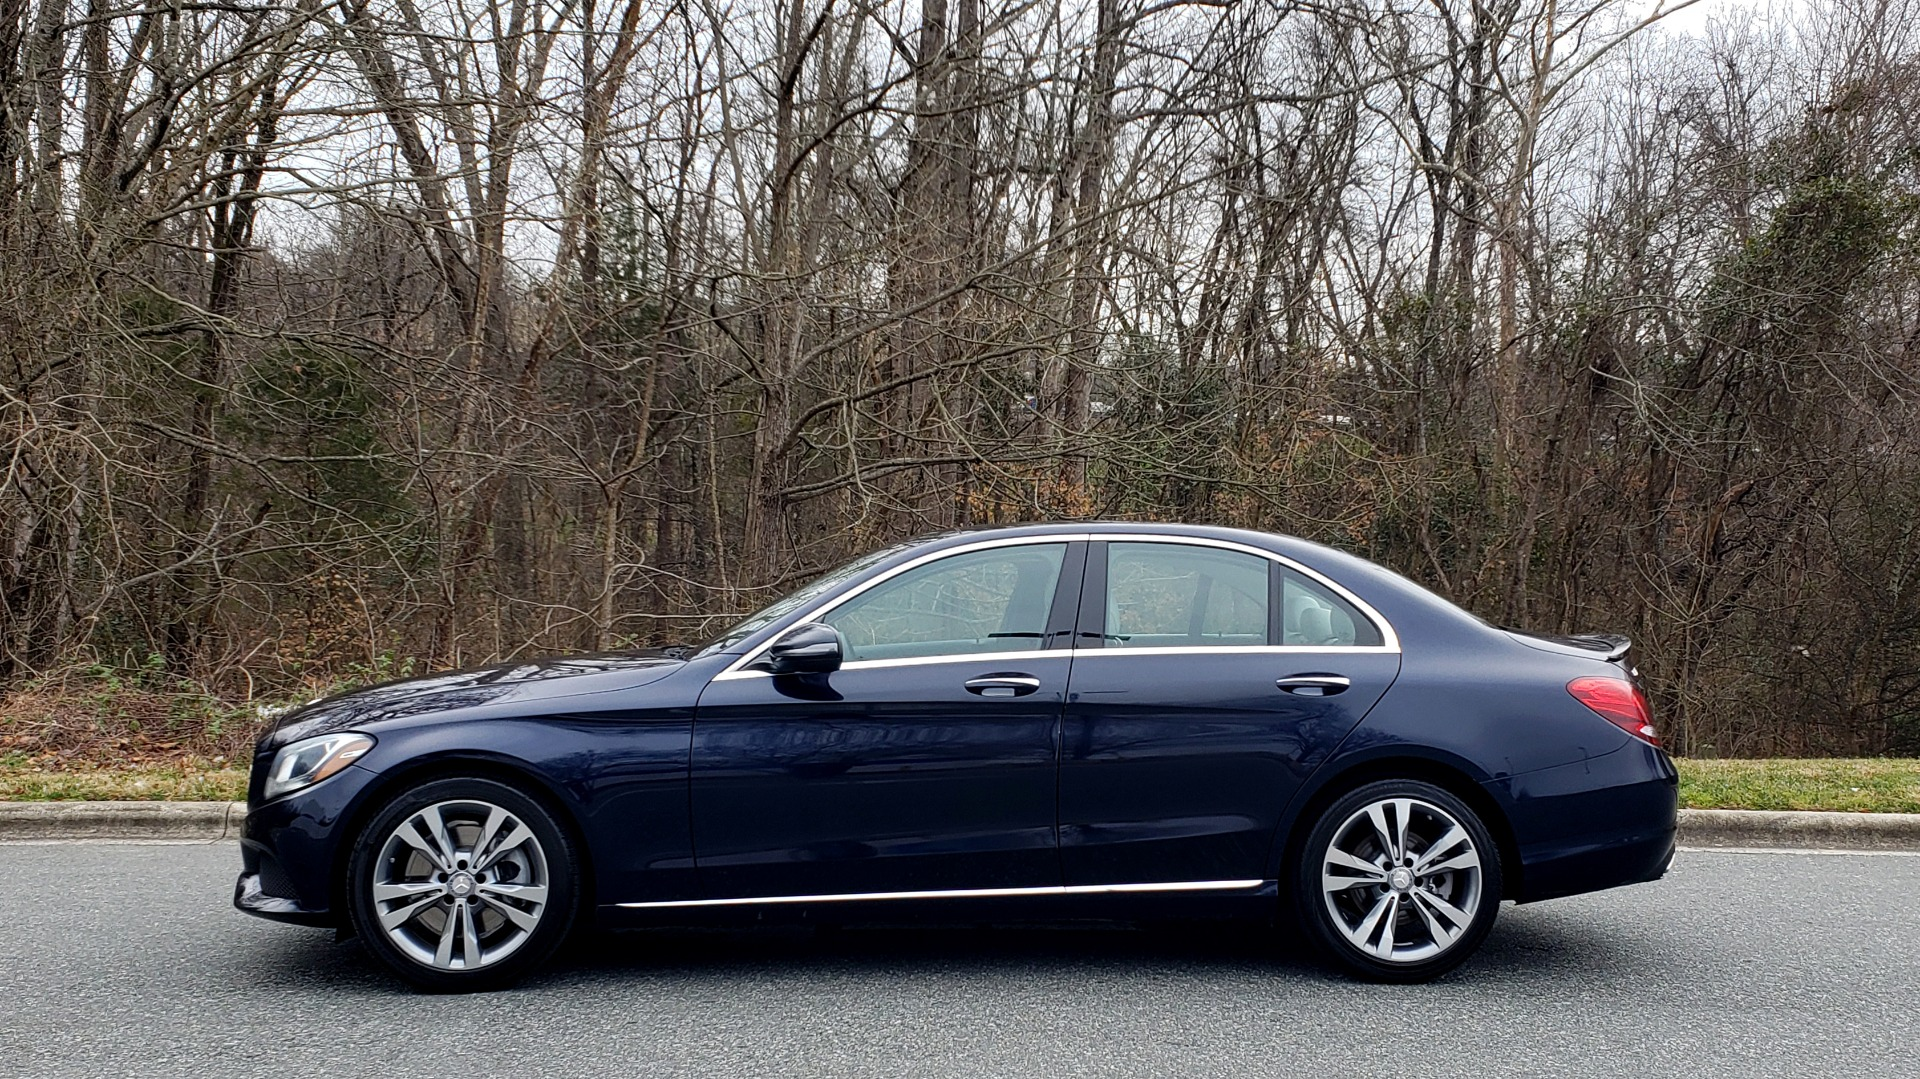 Used 2016 Mercedes-Benz C-CLASS C 300 / PREM PKG / PANO-ROOF / BSA / HTD STS / REARVIEW for sale Sold at Formula Imports in Charlotte NC 28227 2